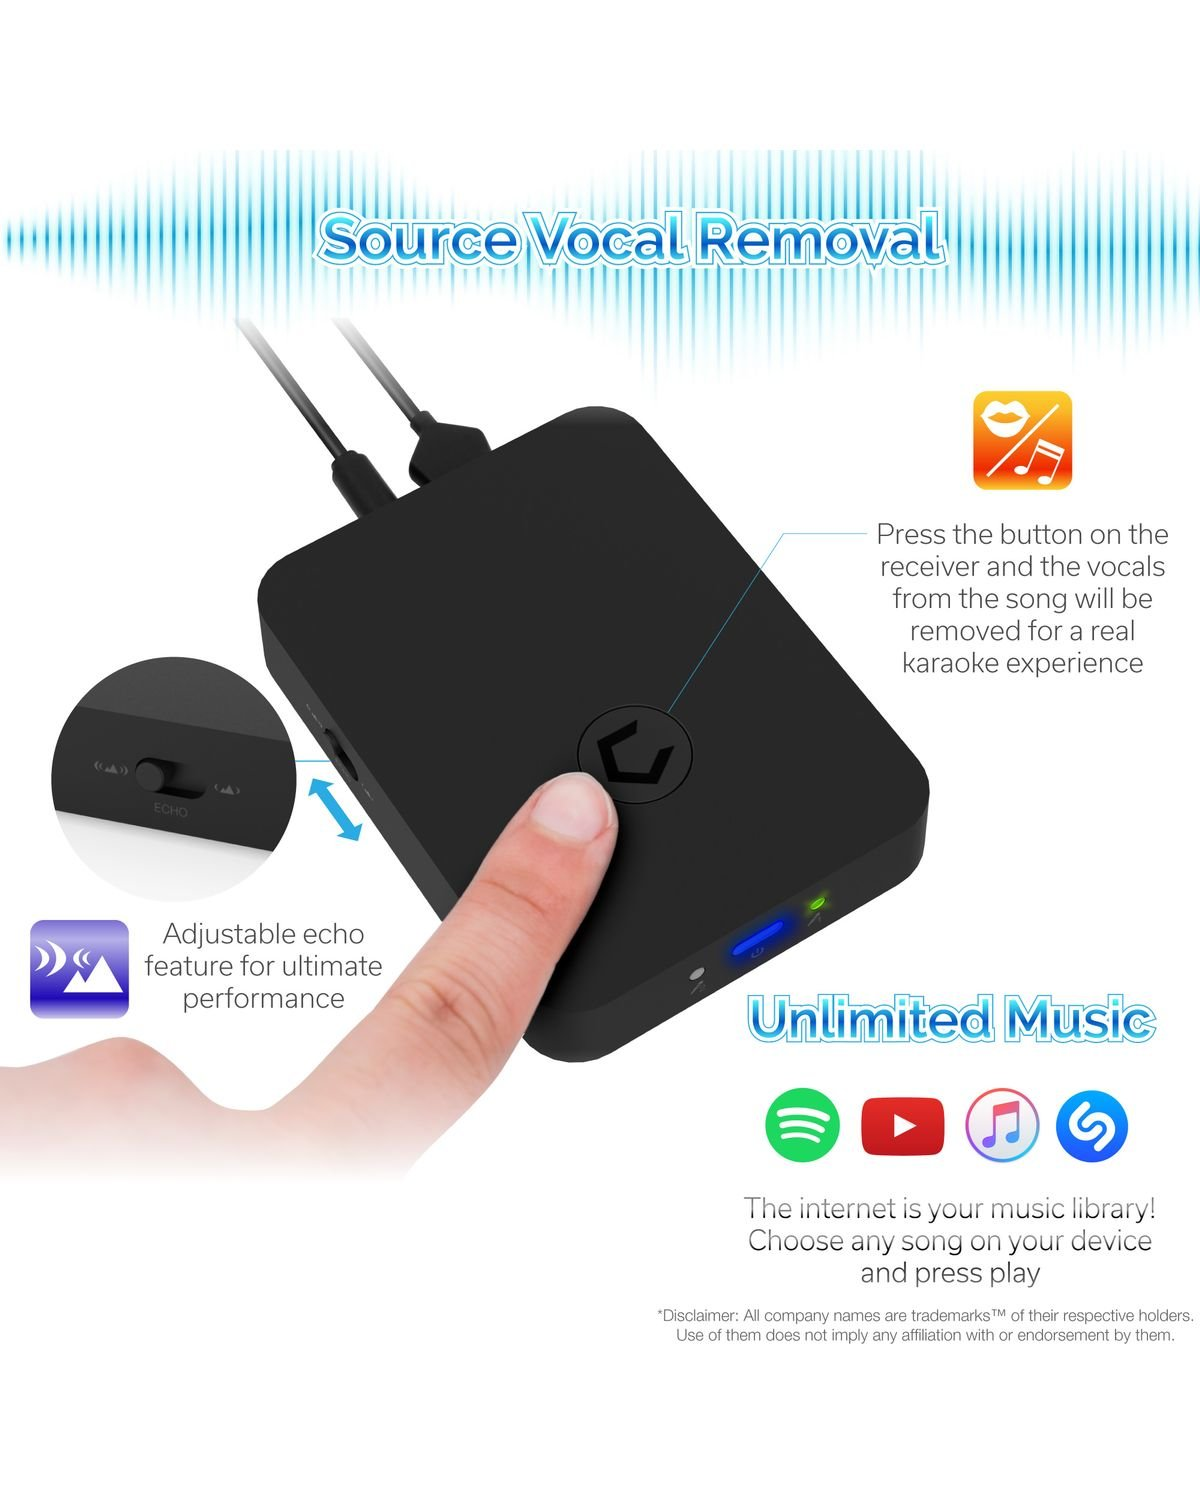 Cobble Pro Wireless Karaoke Microphone 2-pack Mic [Source Vocal Removal Technology][Choose Unlimited Music Source from YouTube, Compatible with iPhone iPad Phone Tablet] New Model BT Speaker Machine by Cobble (Image #3)